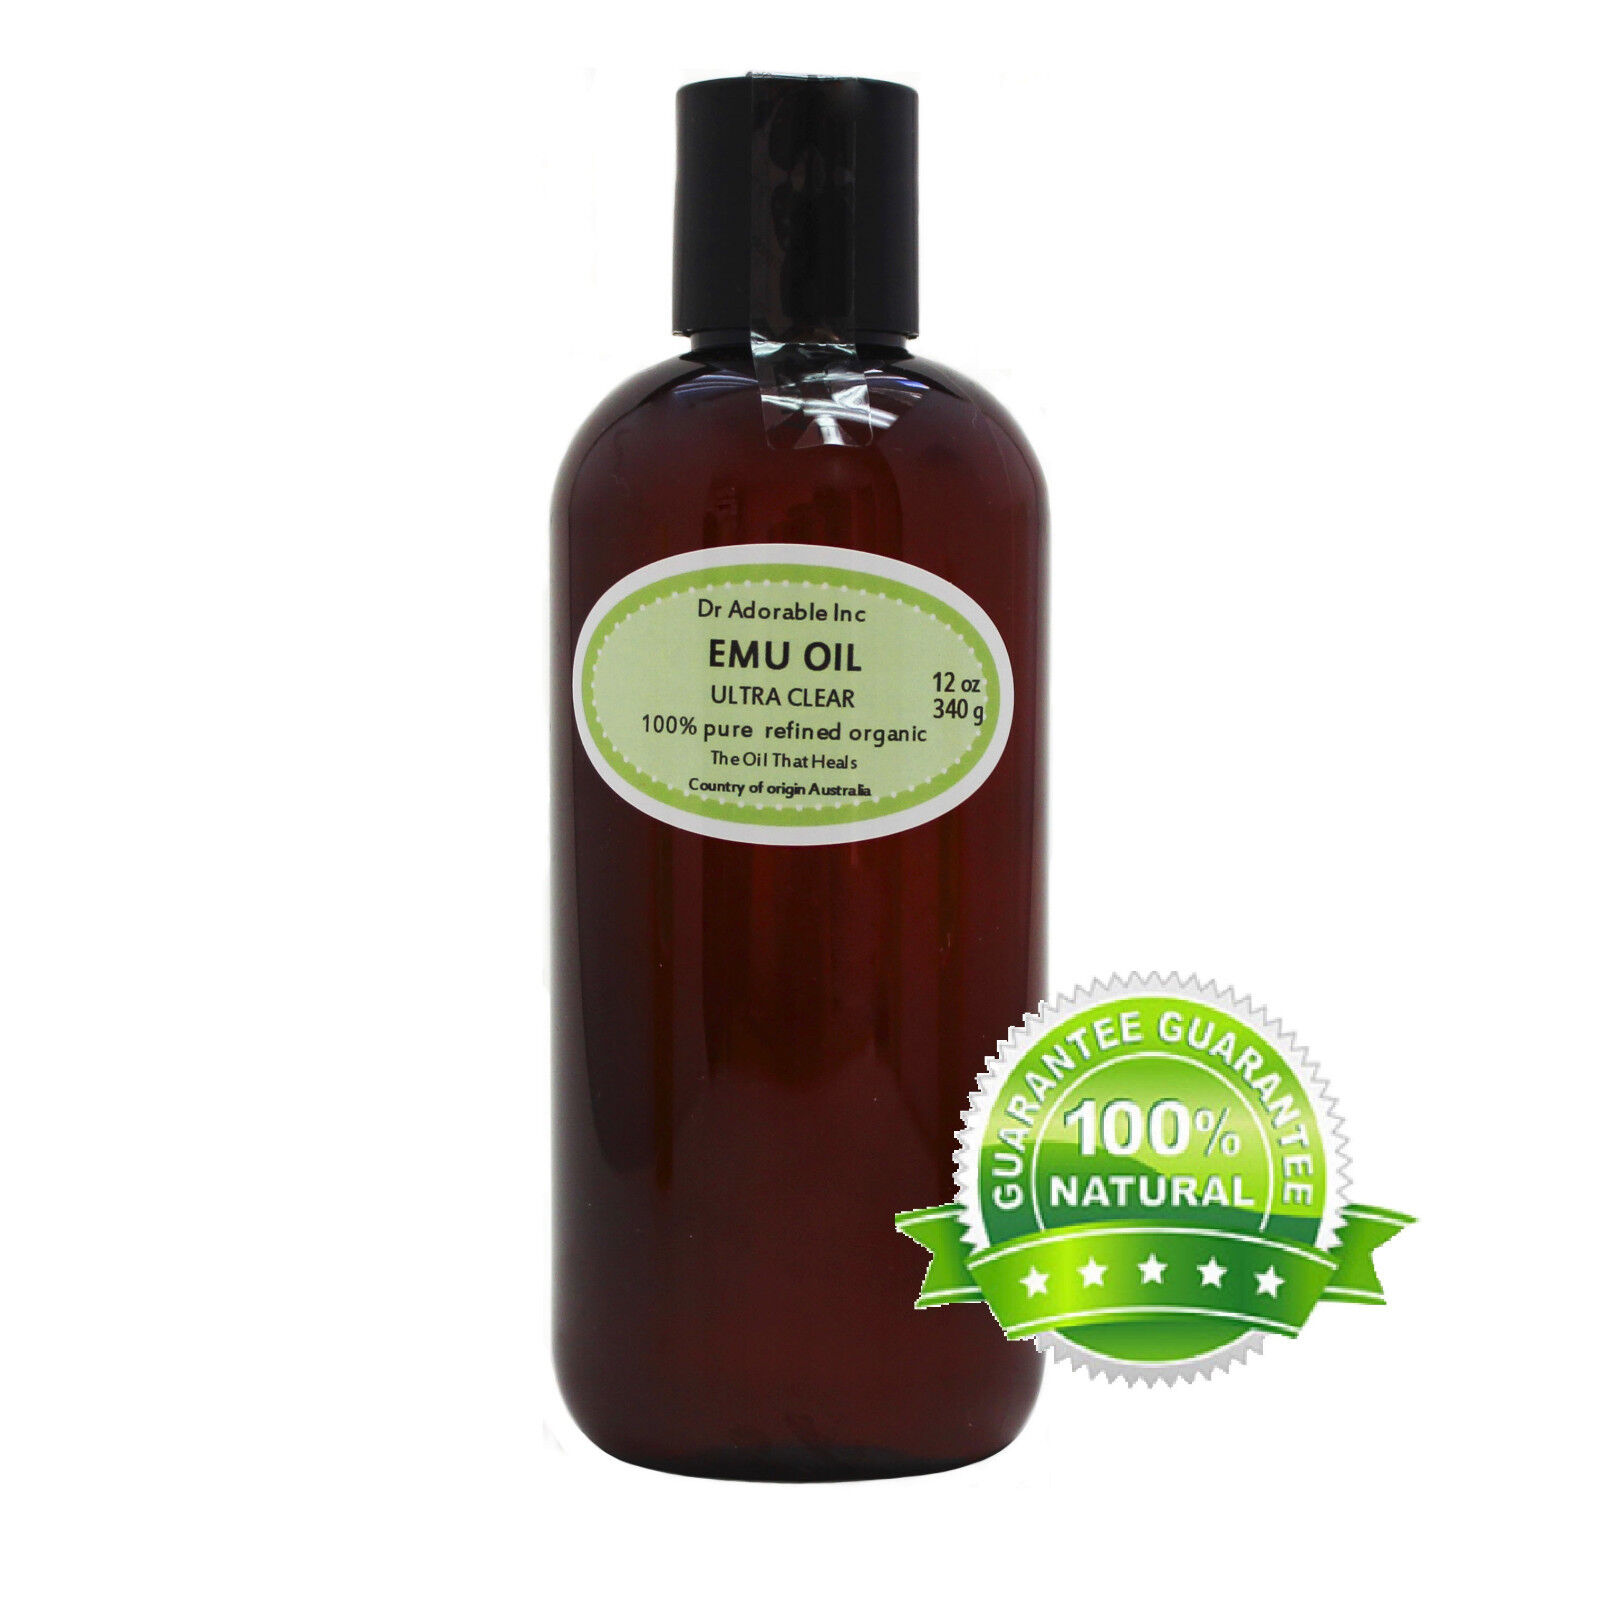 ULTRA CLEAR EMU OIL BY DR.ADORABLE 100% PURE ORGANIC NATURAL